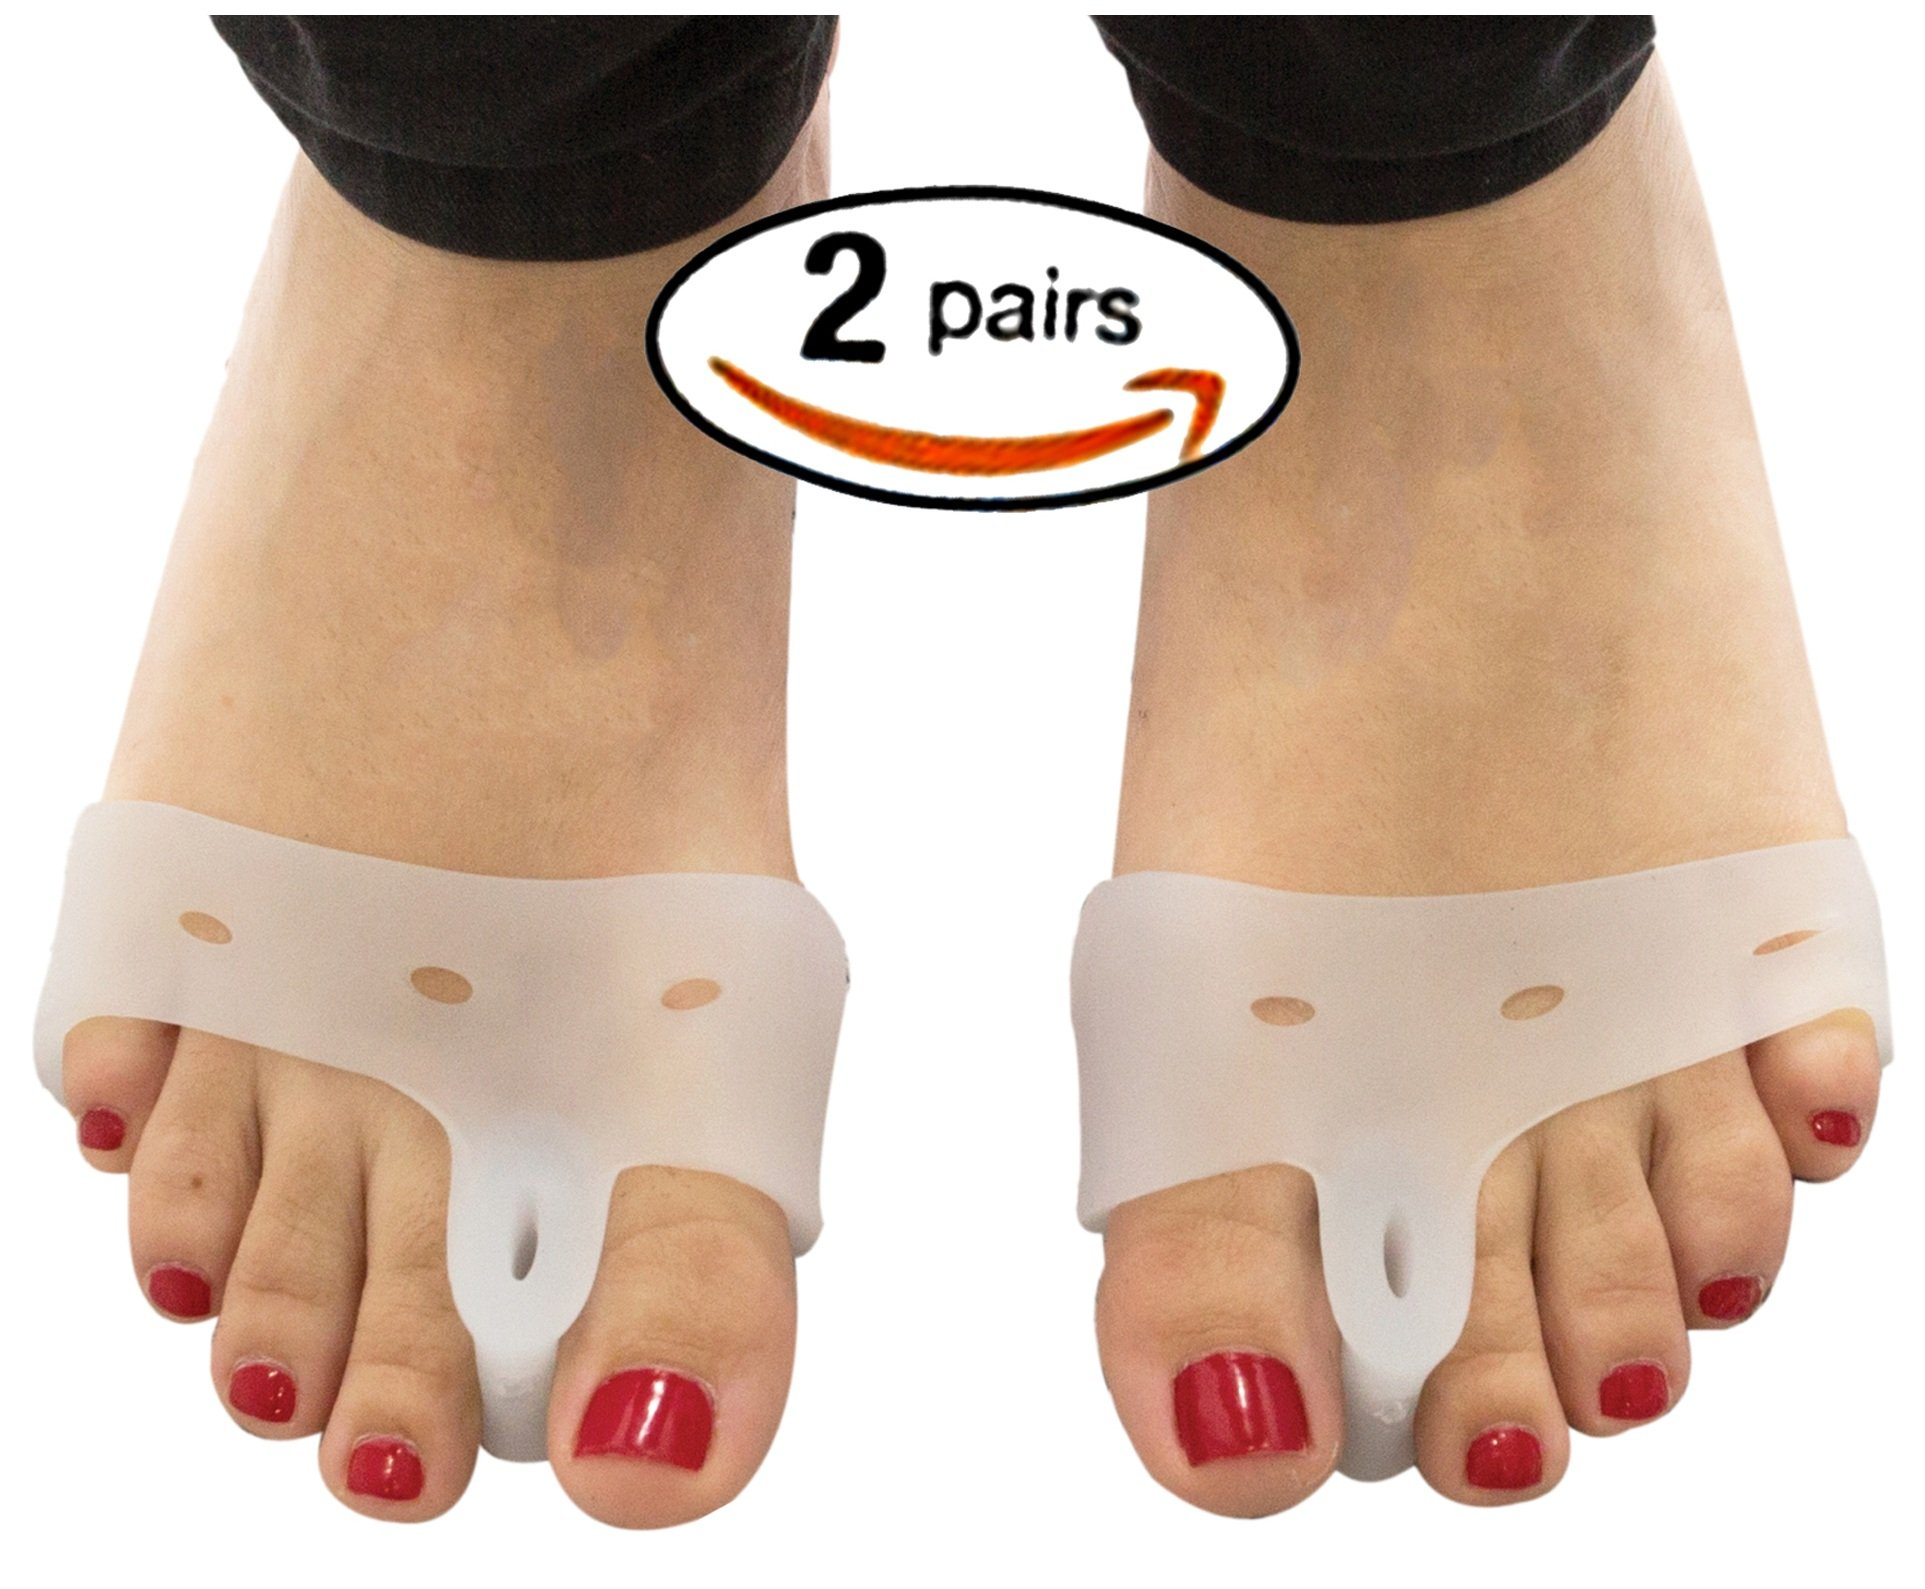 (2 Pairs) Bunion Pads and Toe Spacer Deluxe Combo/Bunion Cushion with Silicone Gel Separators - Gel Toe Straightener Bunion Relief Pads and Toe Alignment- Big Toe Separator